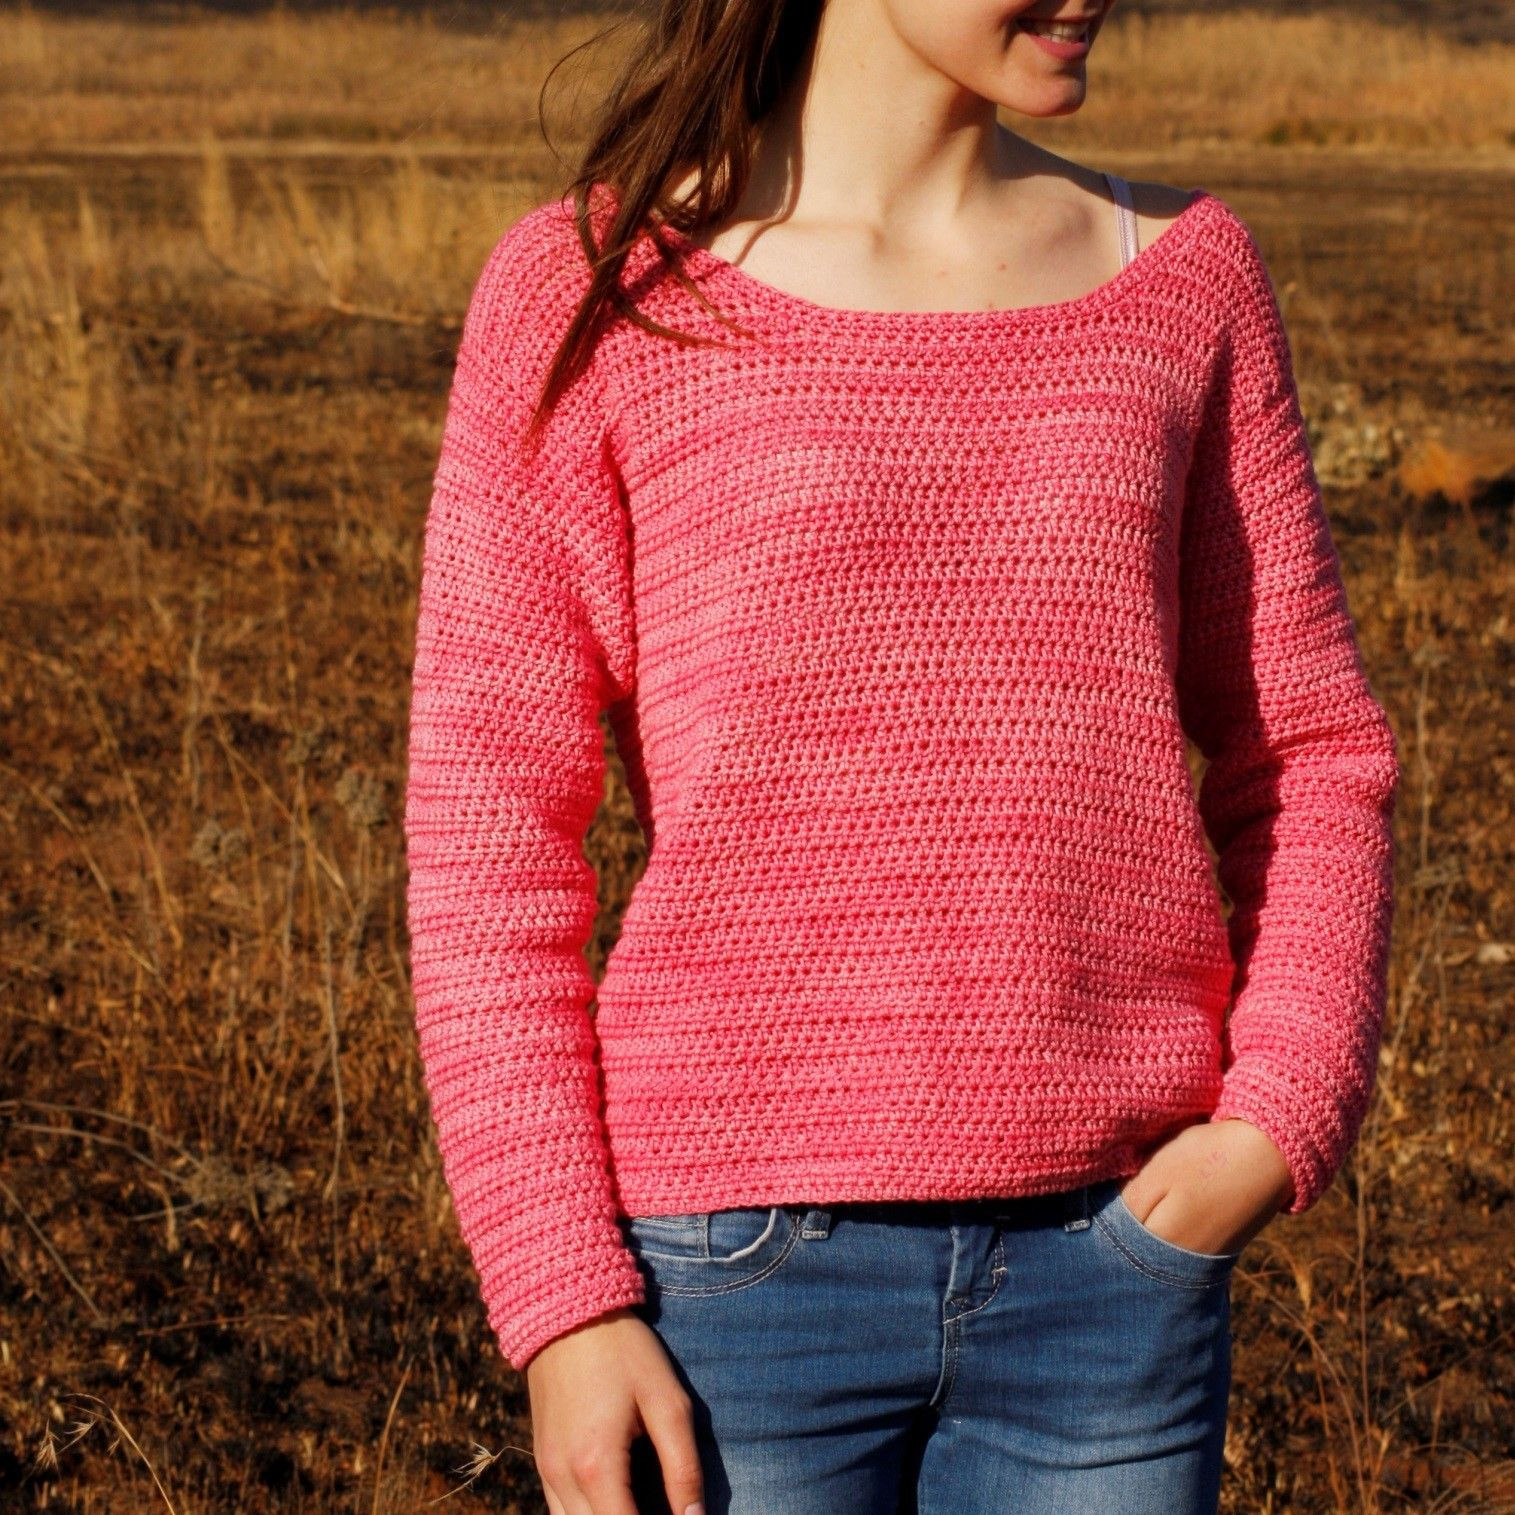 Crochet Sweater Pattern Free Awesome Free Crochet Sweater Pattern Gorgeous … Of Unique 50 Images Crochet Sweater Pattern Free